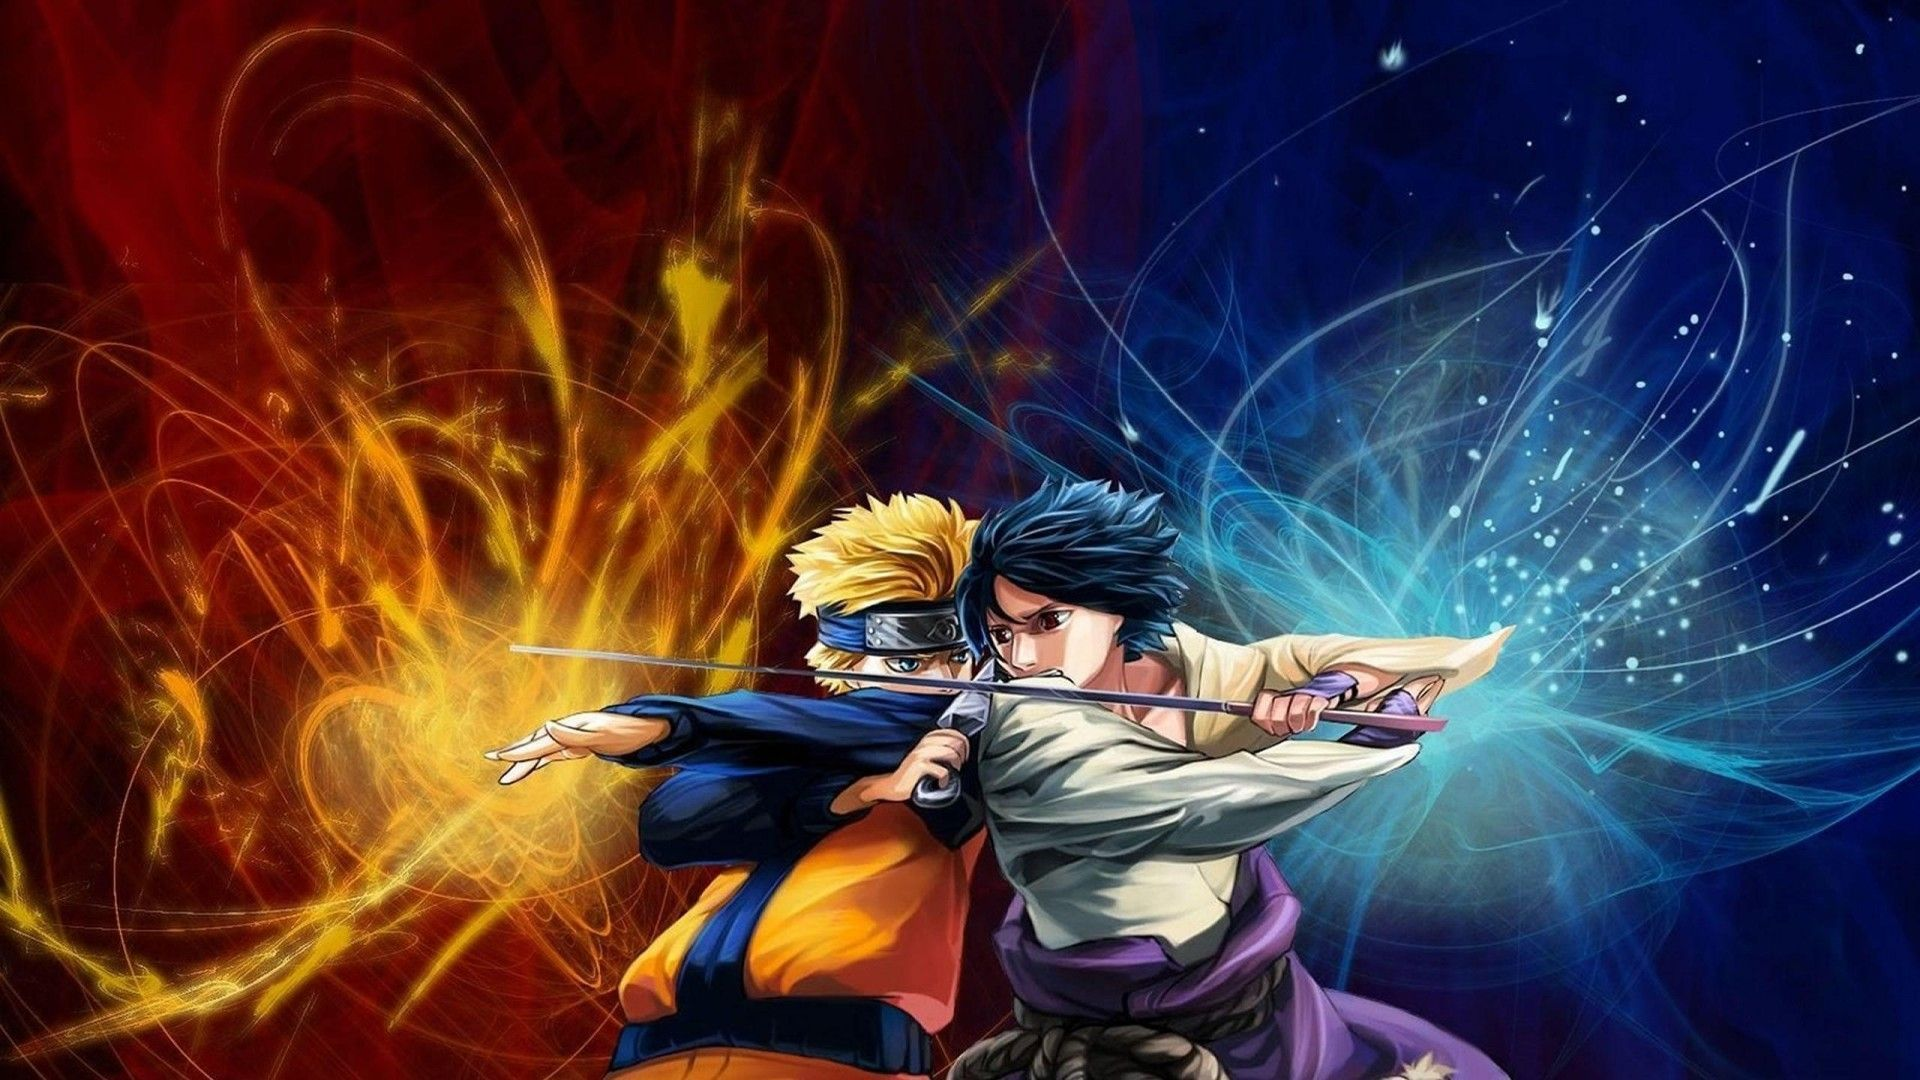 Naruto Wallpaper Hd Free Download Naruto Wallpaper Naruto And Sasuke Naruto Vs Sasuke